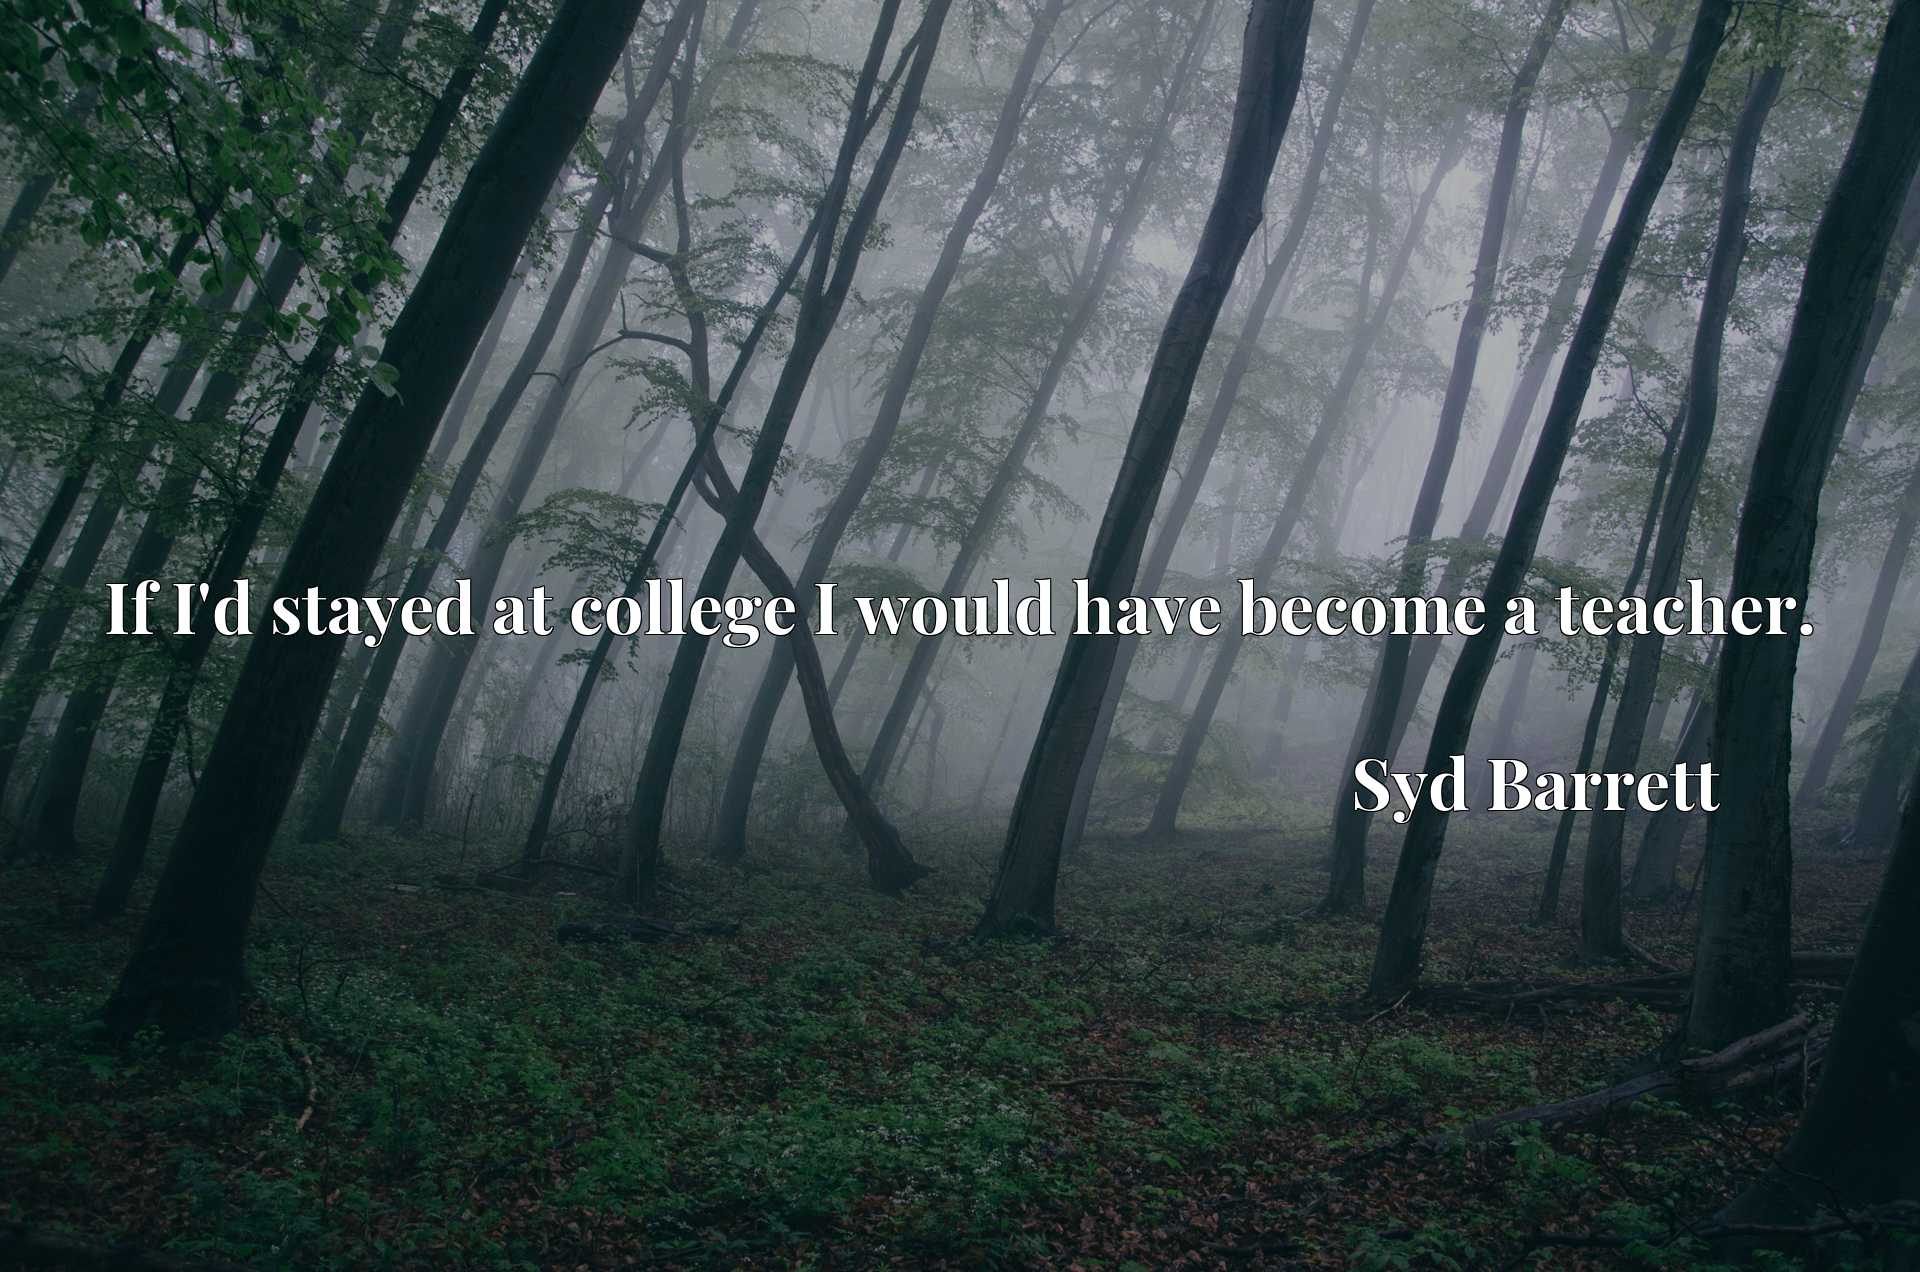 Quote Picture :If I'd stayed at college I would have become a teacher.